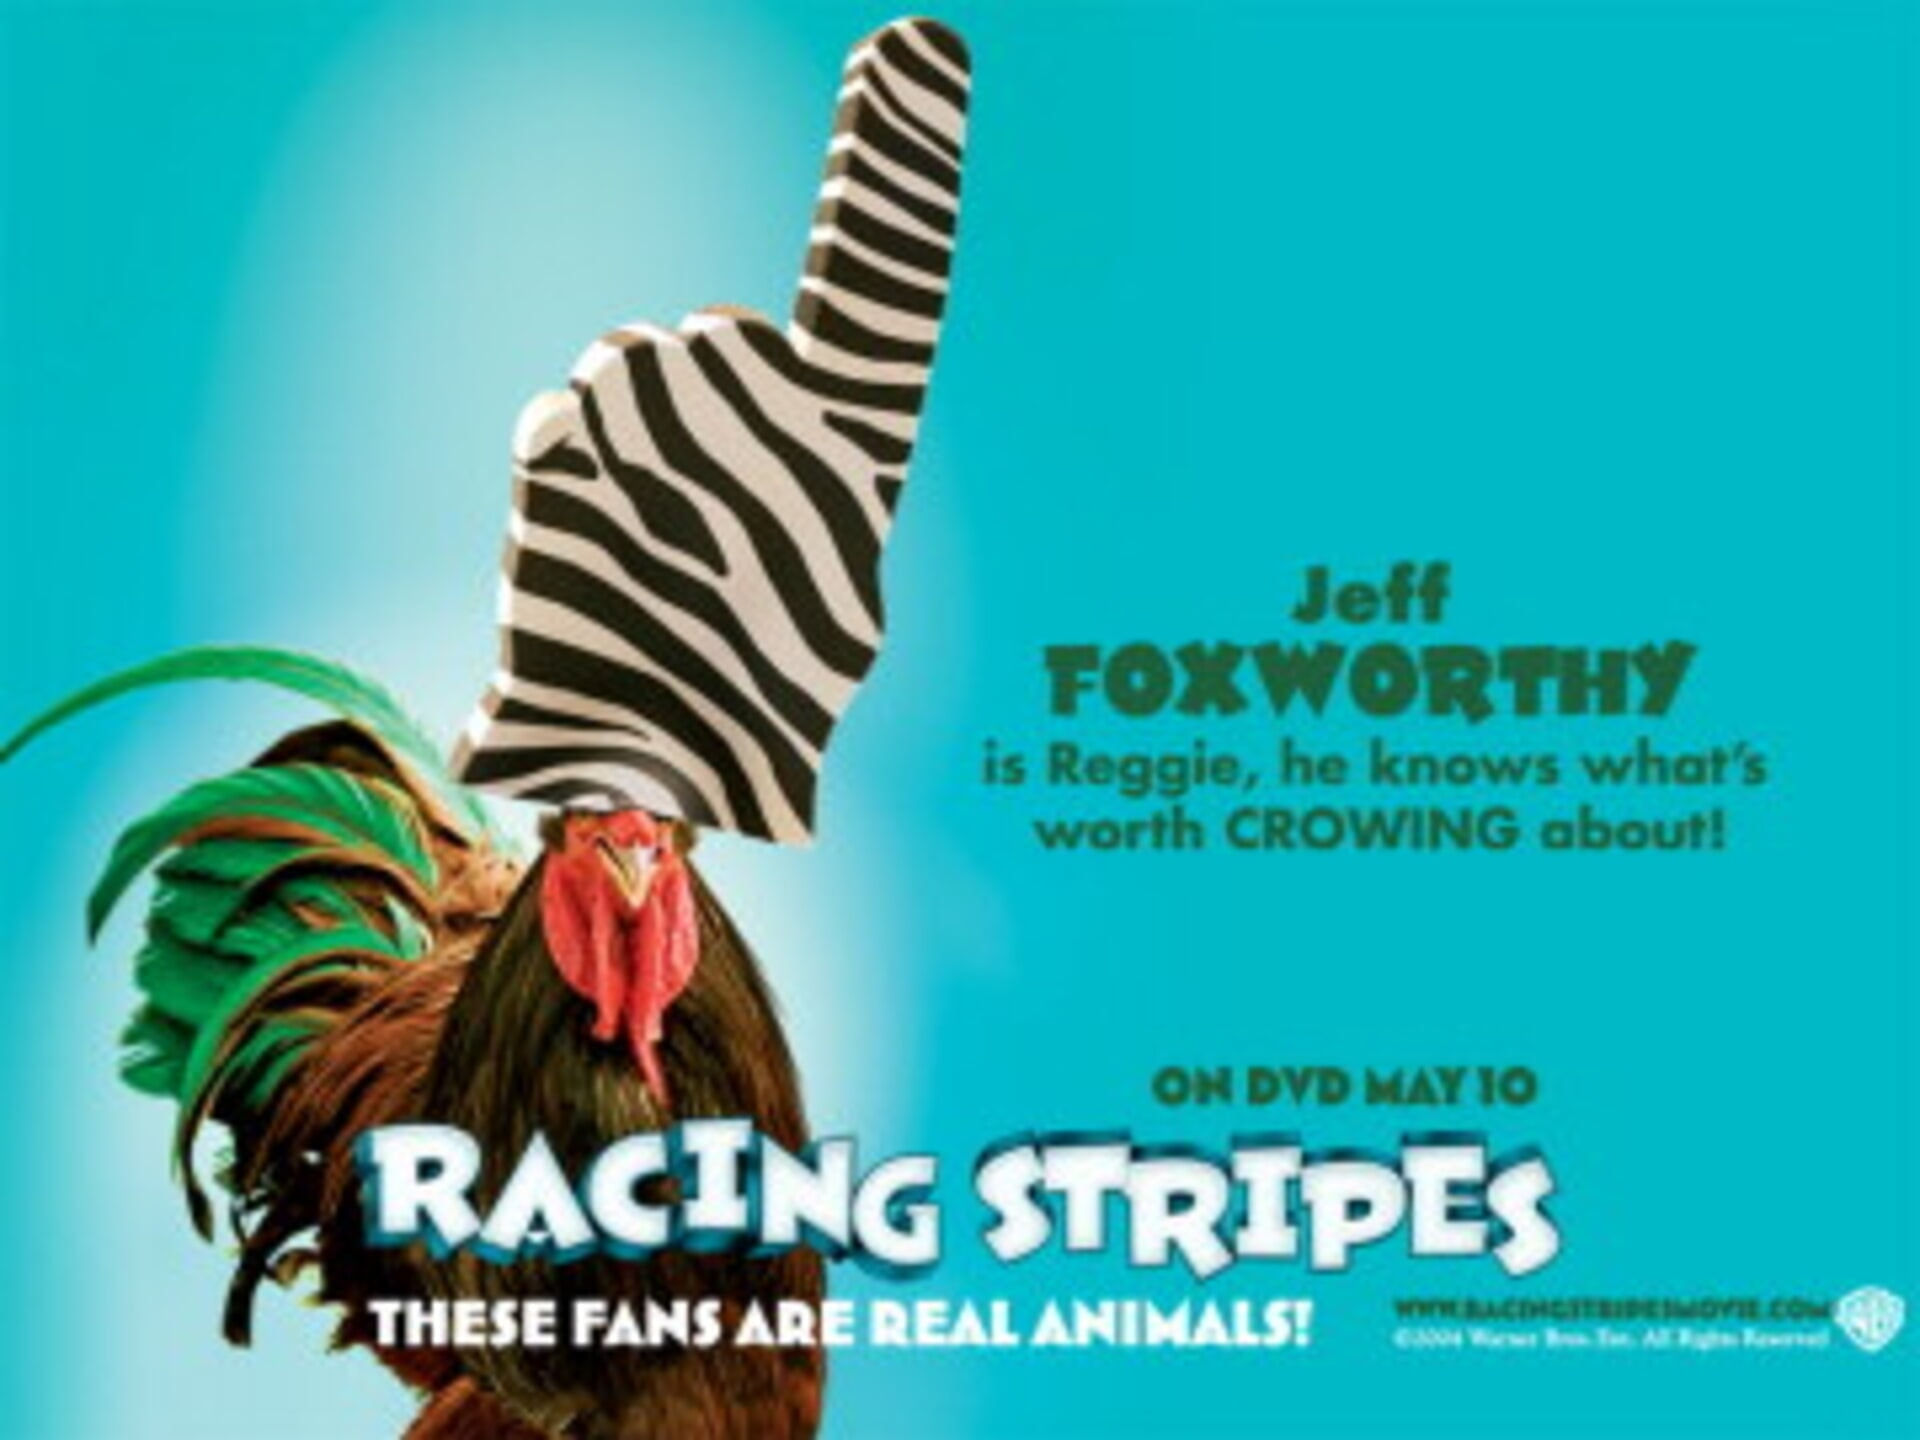 Racing Stripes - Image 43